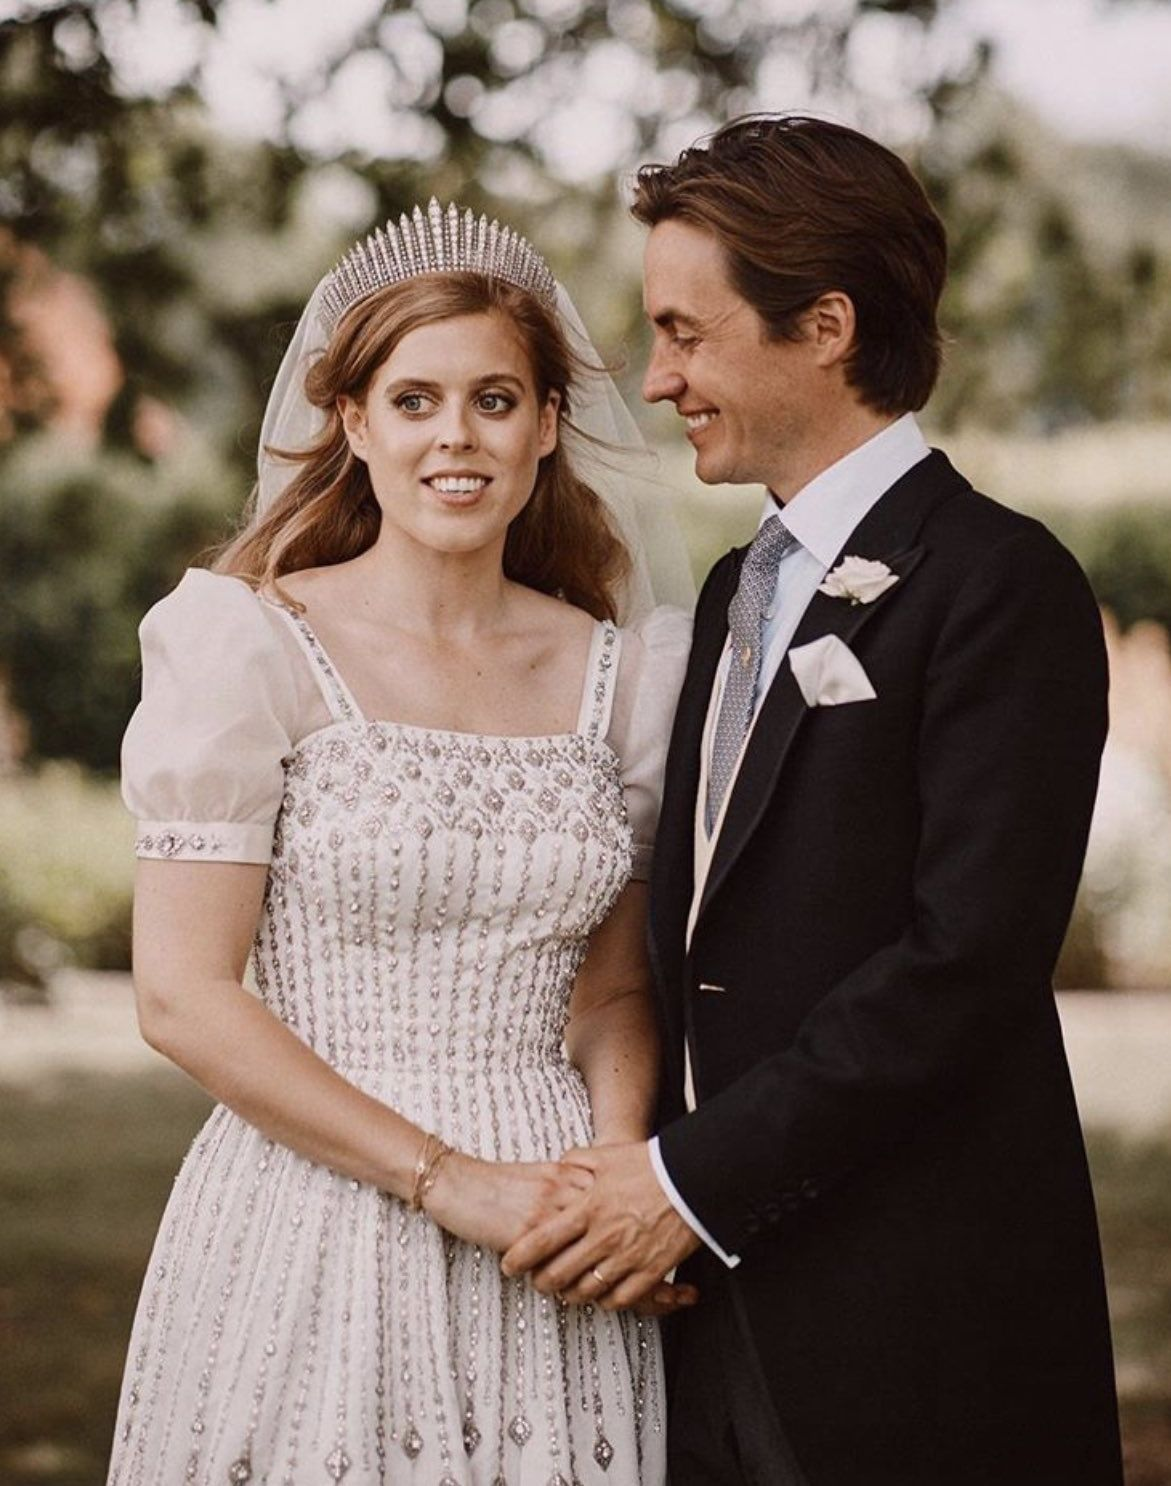 Omid Scobie on Twitter in 2020 Princess beatrice wedding